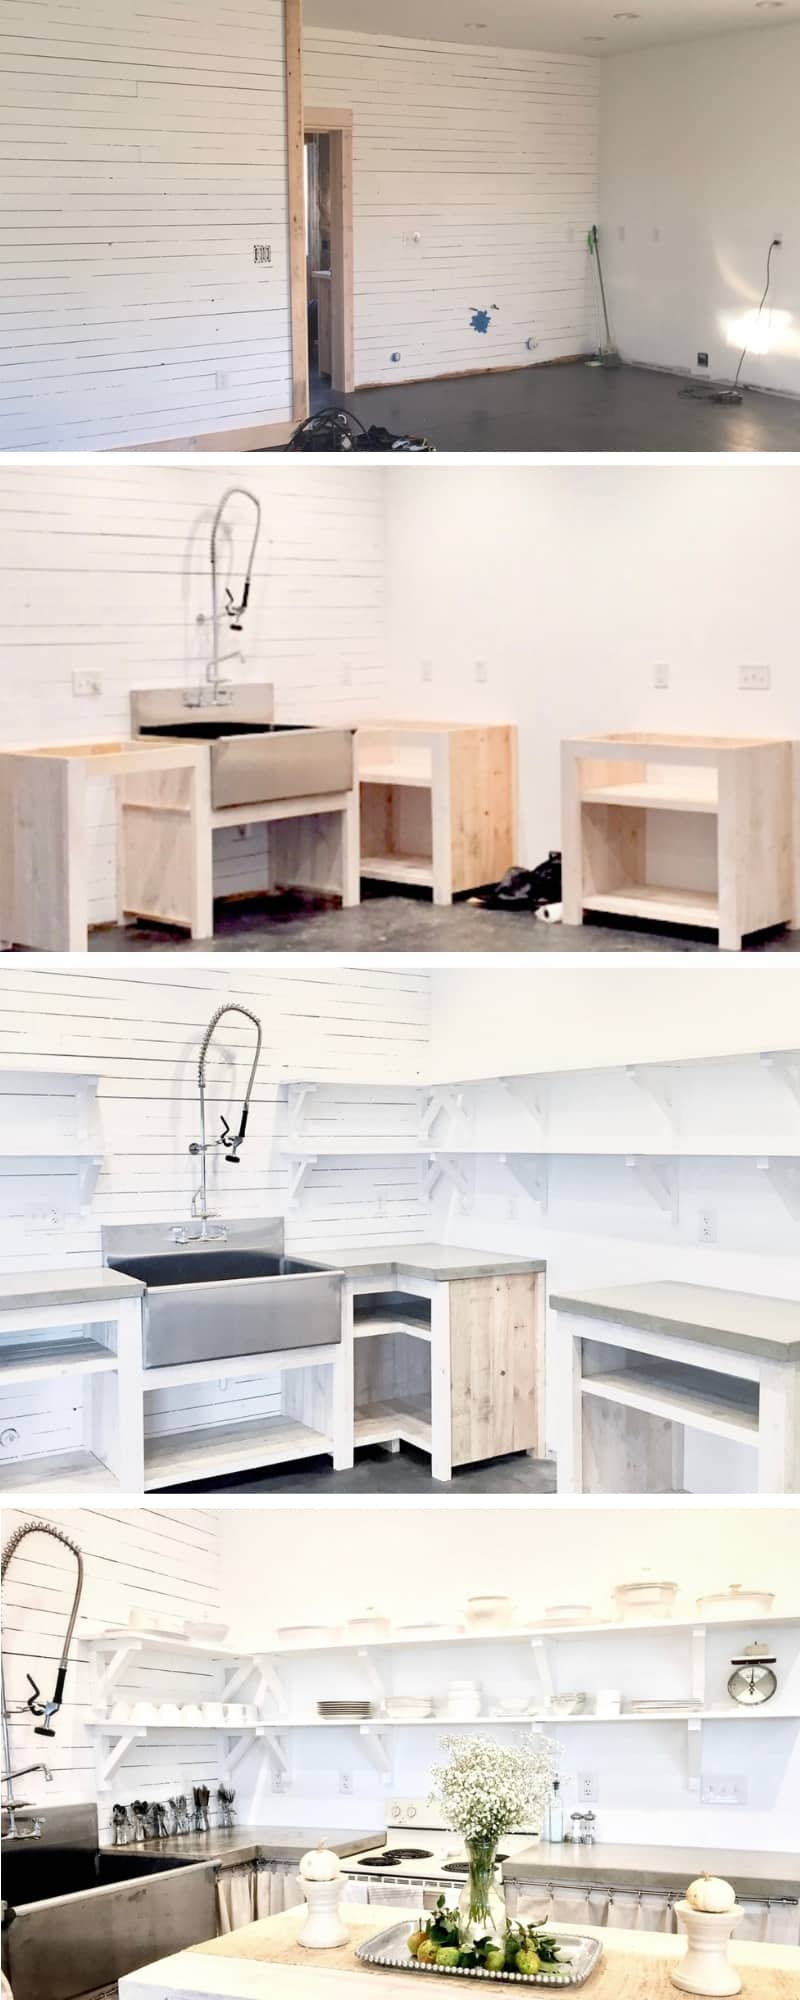 Photo collage showing the steps for building a DIY kitchen with white shiplap walls, DIY cabinets, open shelving, a large farmhouse stainless steel sink and concrete countertops with farmhouse decor